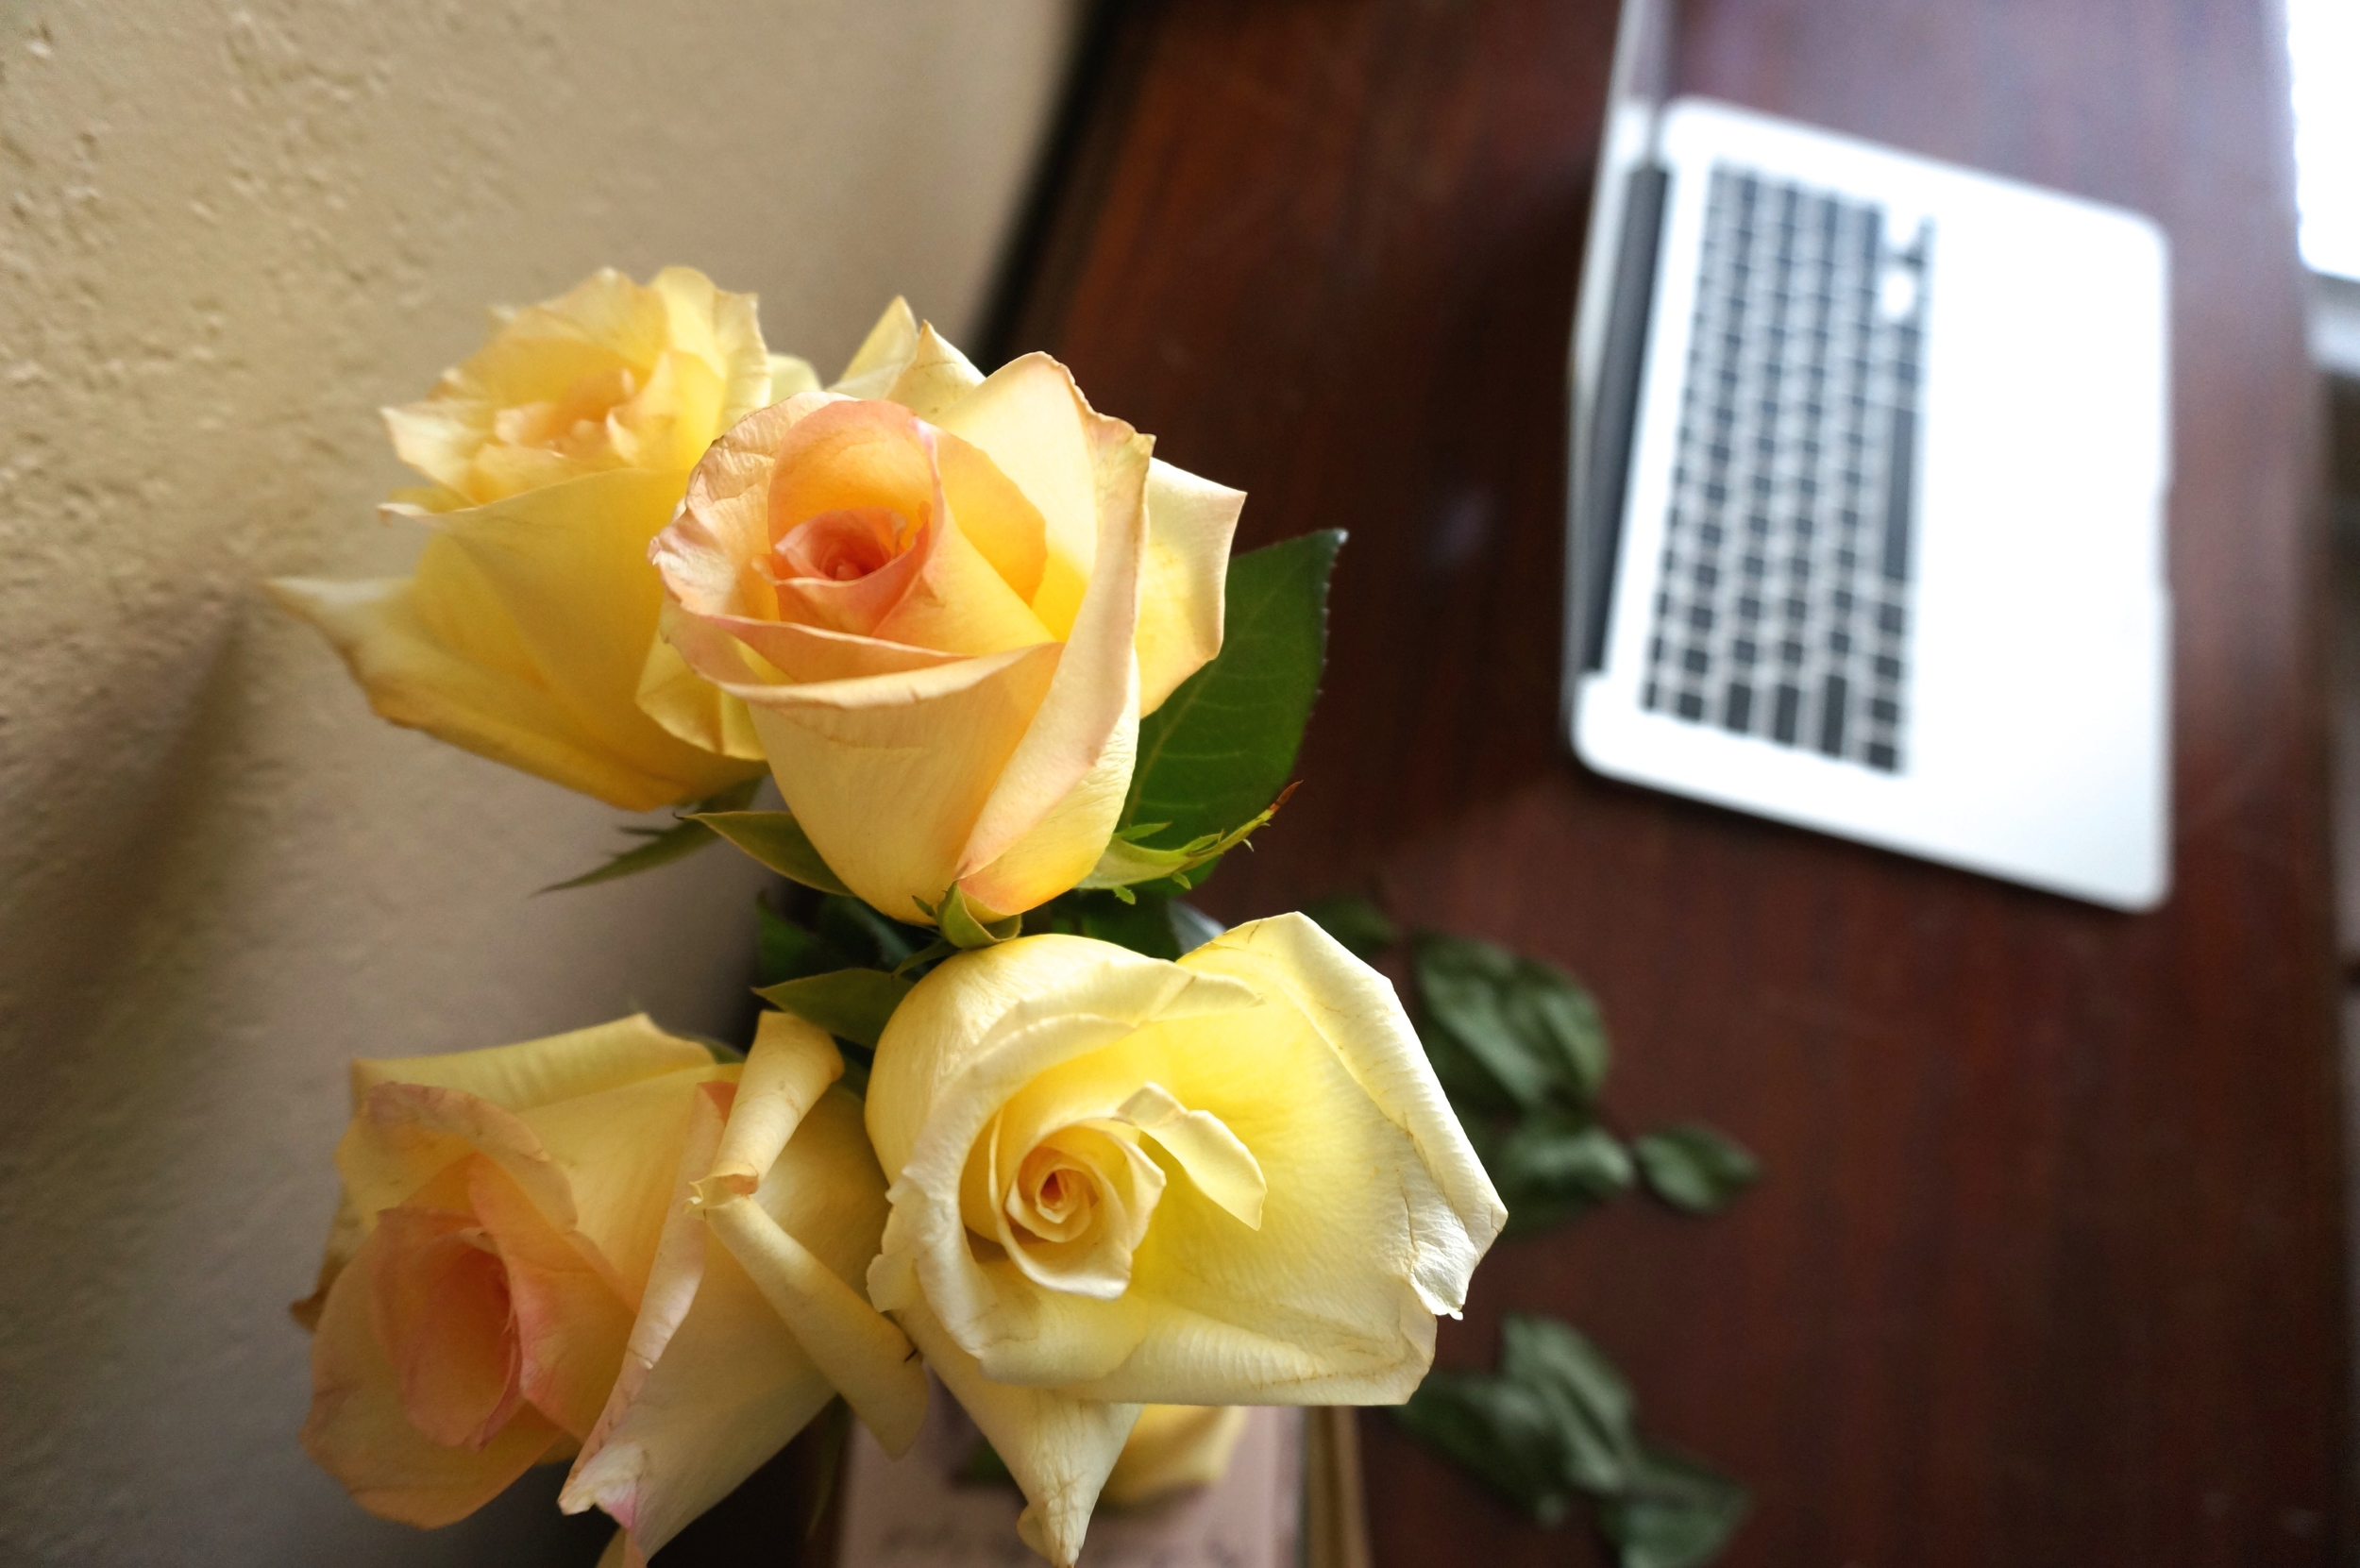 Gorgeous fresh yellow roses for inspiration and happiness.